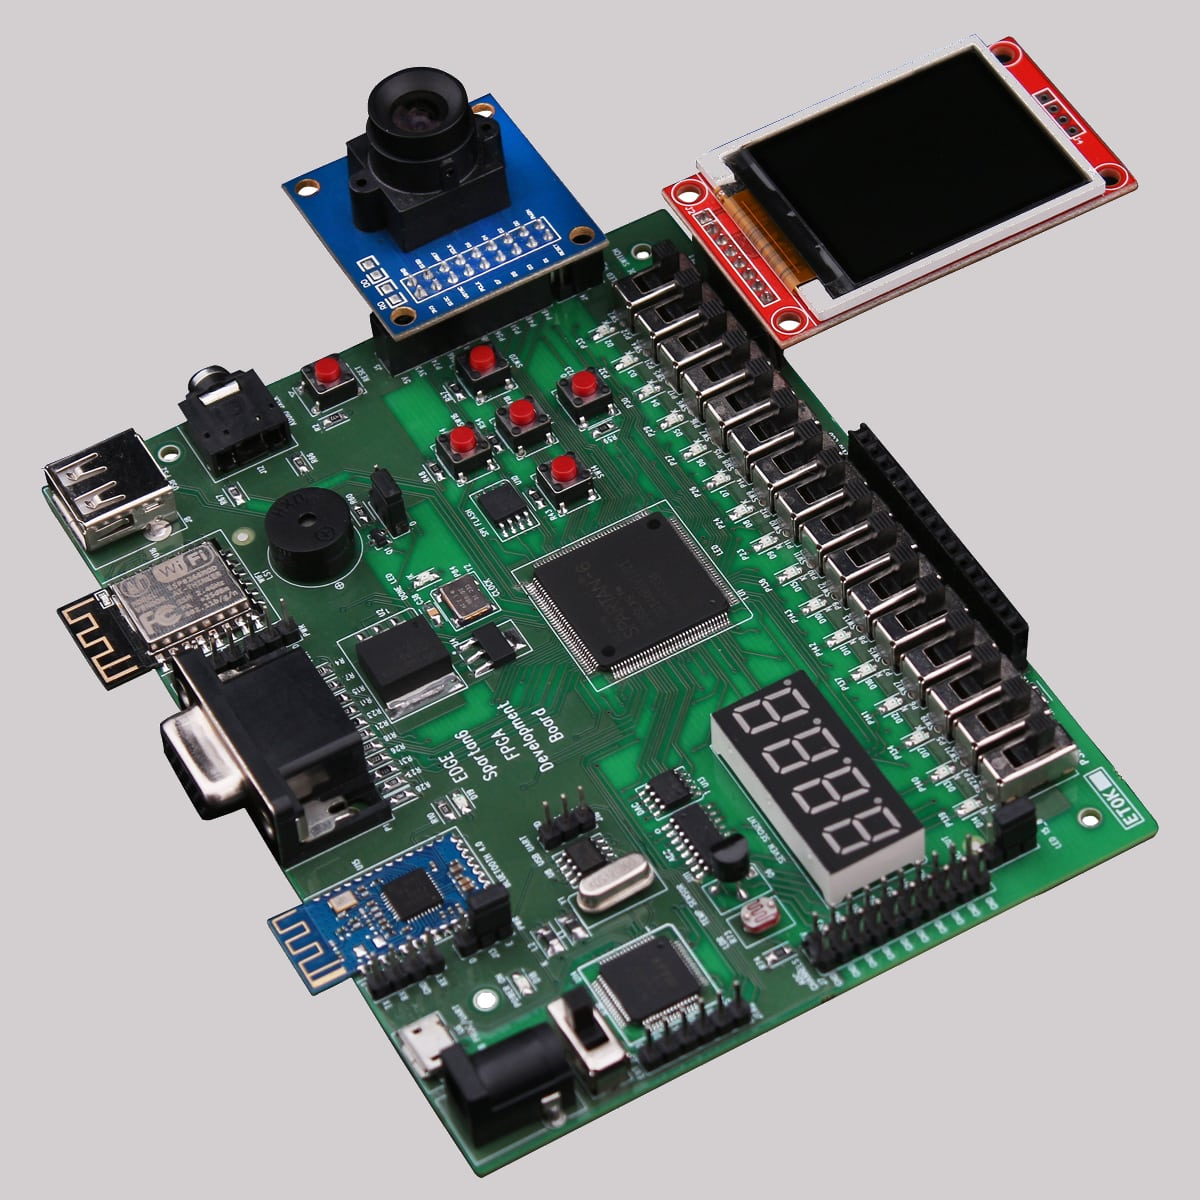 EDGE Spartan 6 FPGA Development Board